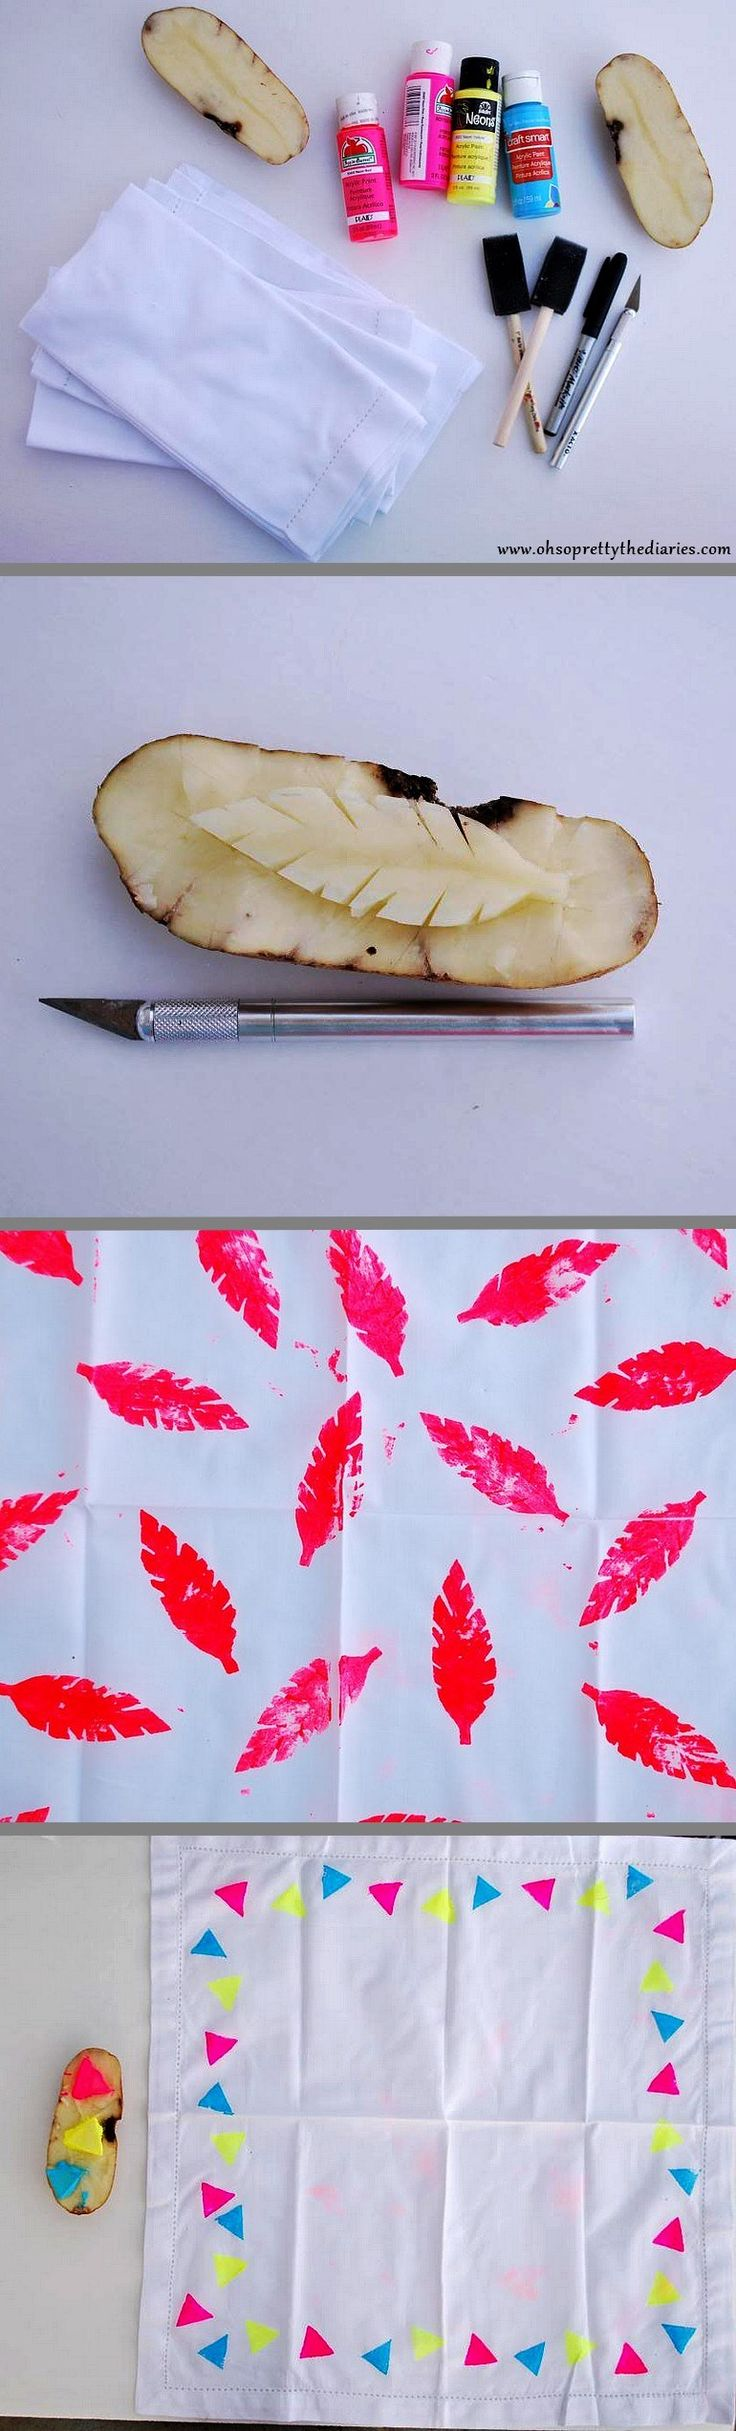 Potato sting ideas. pink feathers &; colorful triangels. easy diy